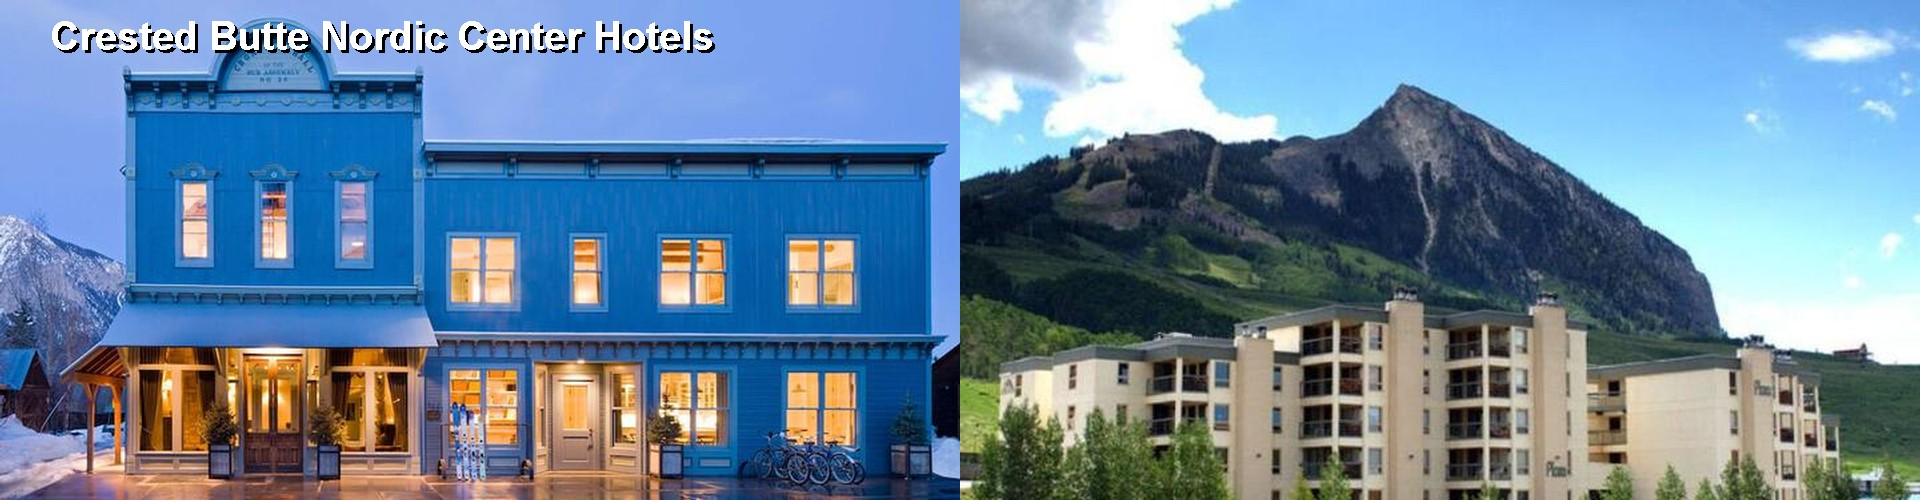 5 Best Hotels near Crested Butte Nordic Center